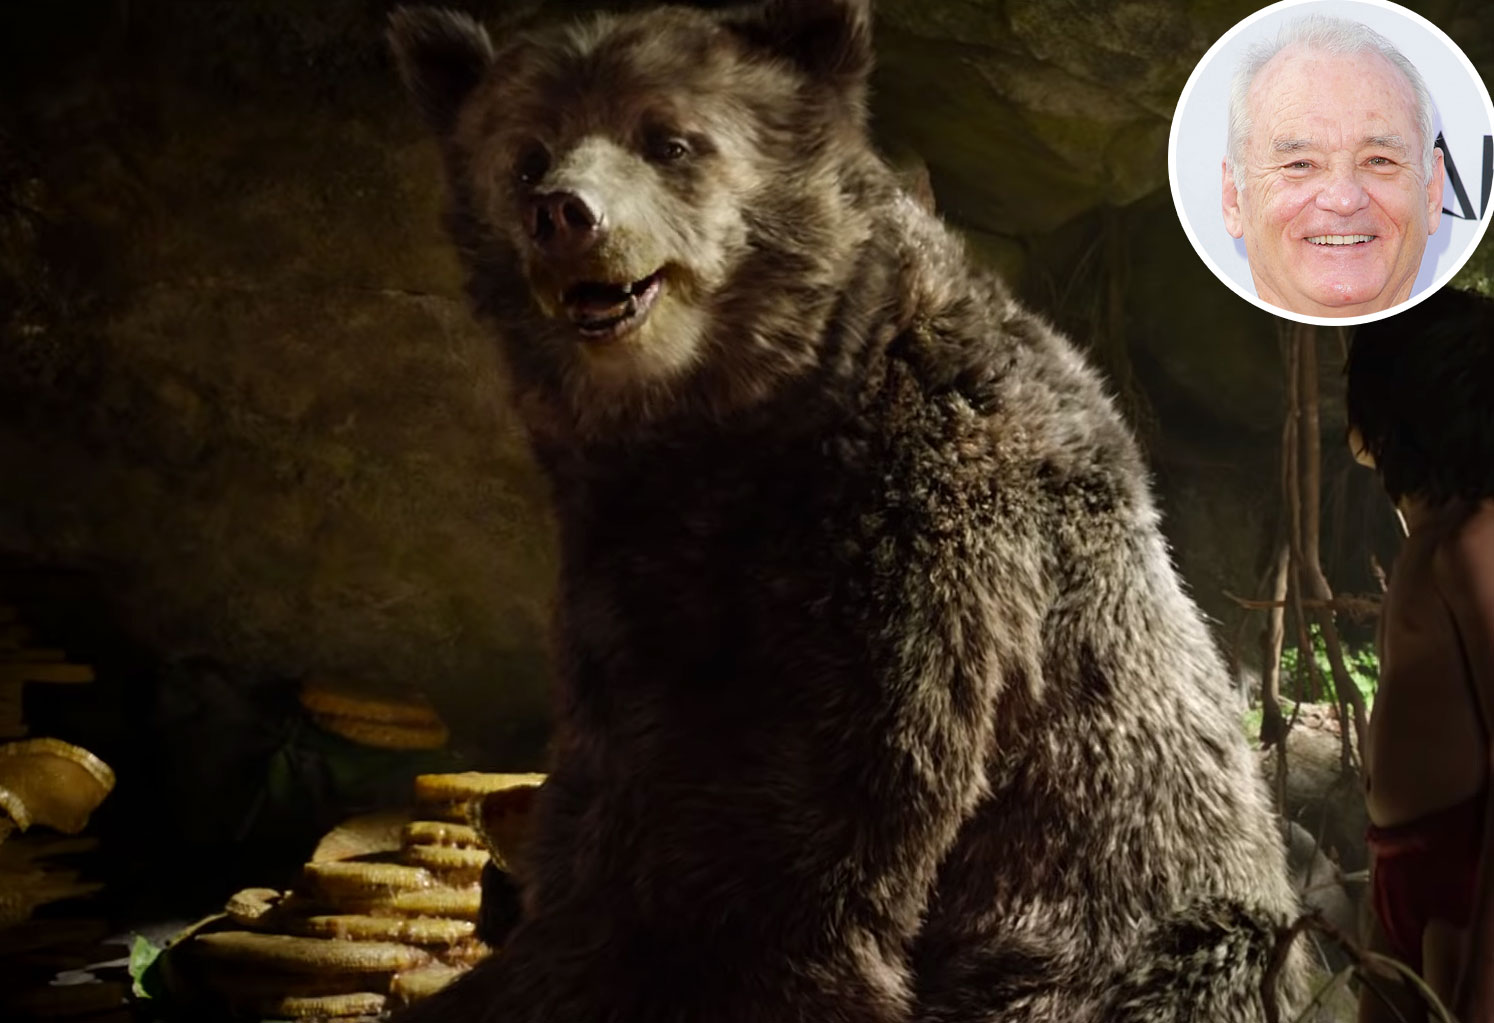 Bill Murray The Jungle Book Baloo Voice Over Disney and Pixar Characters - Baloo in The Jungle Book (2016)